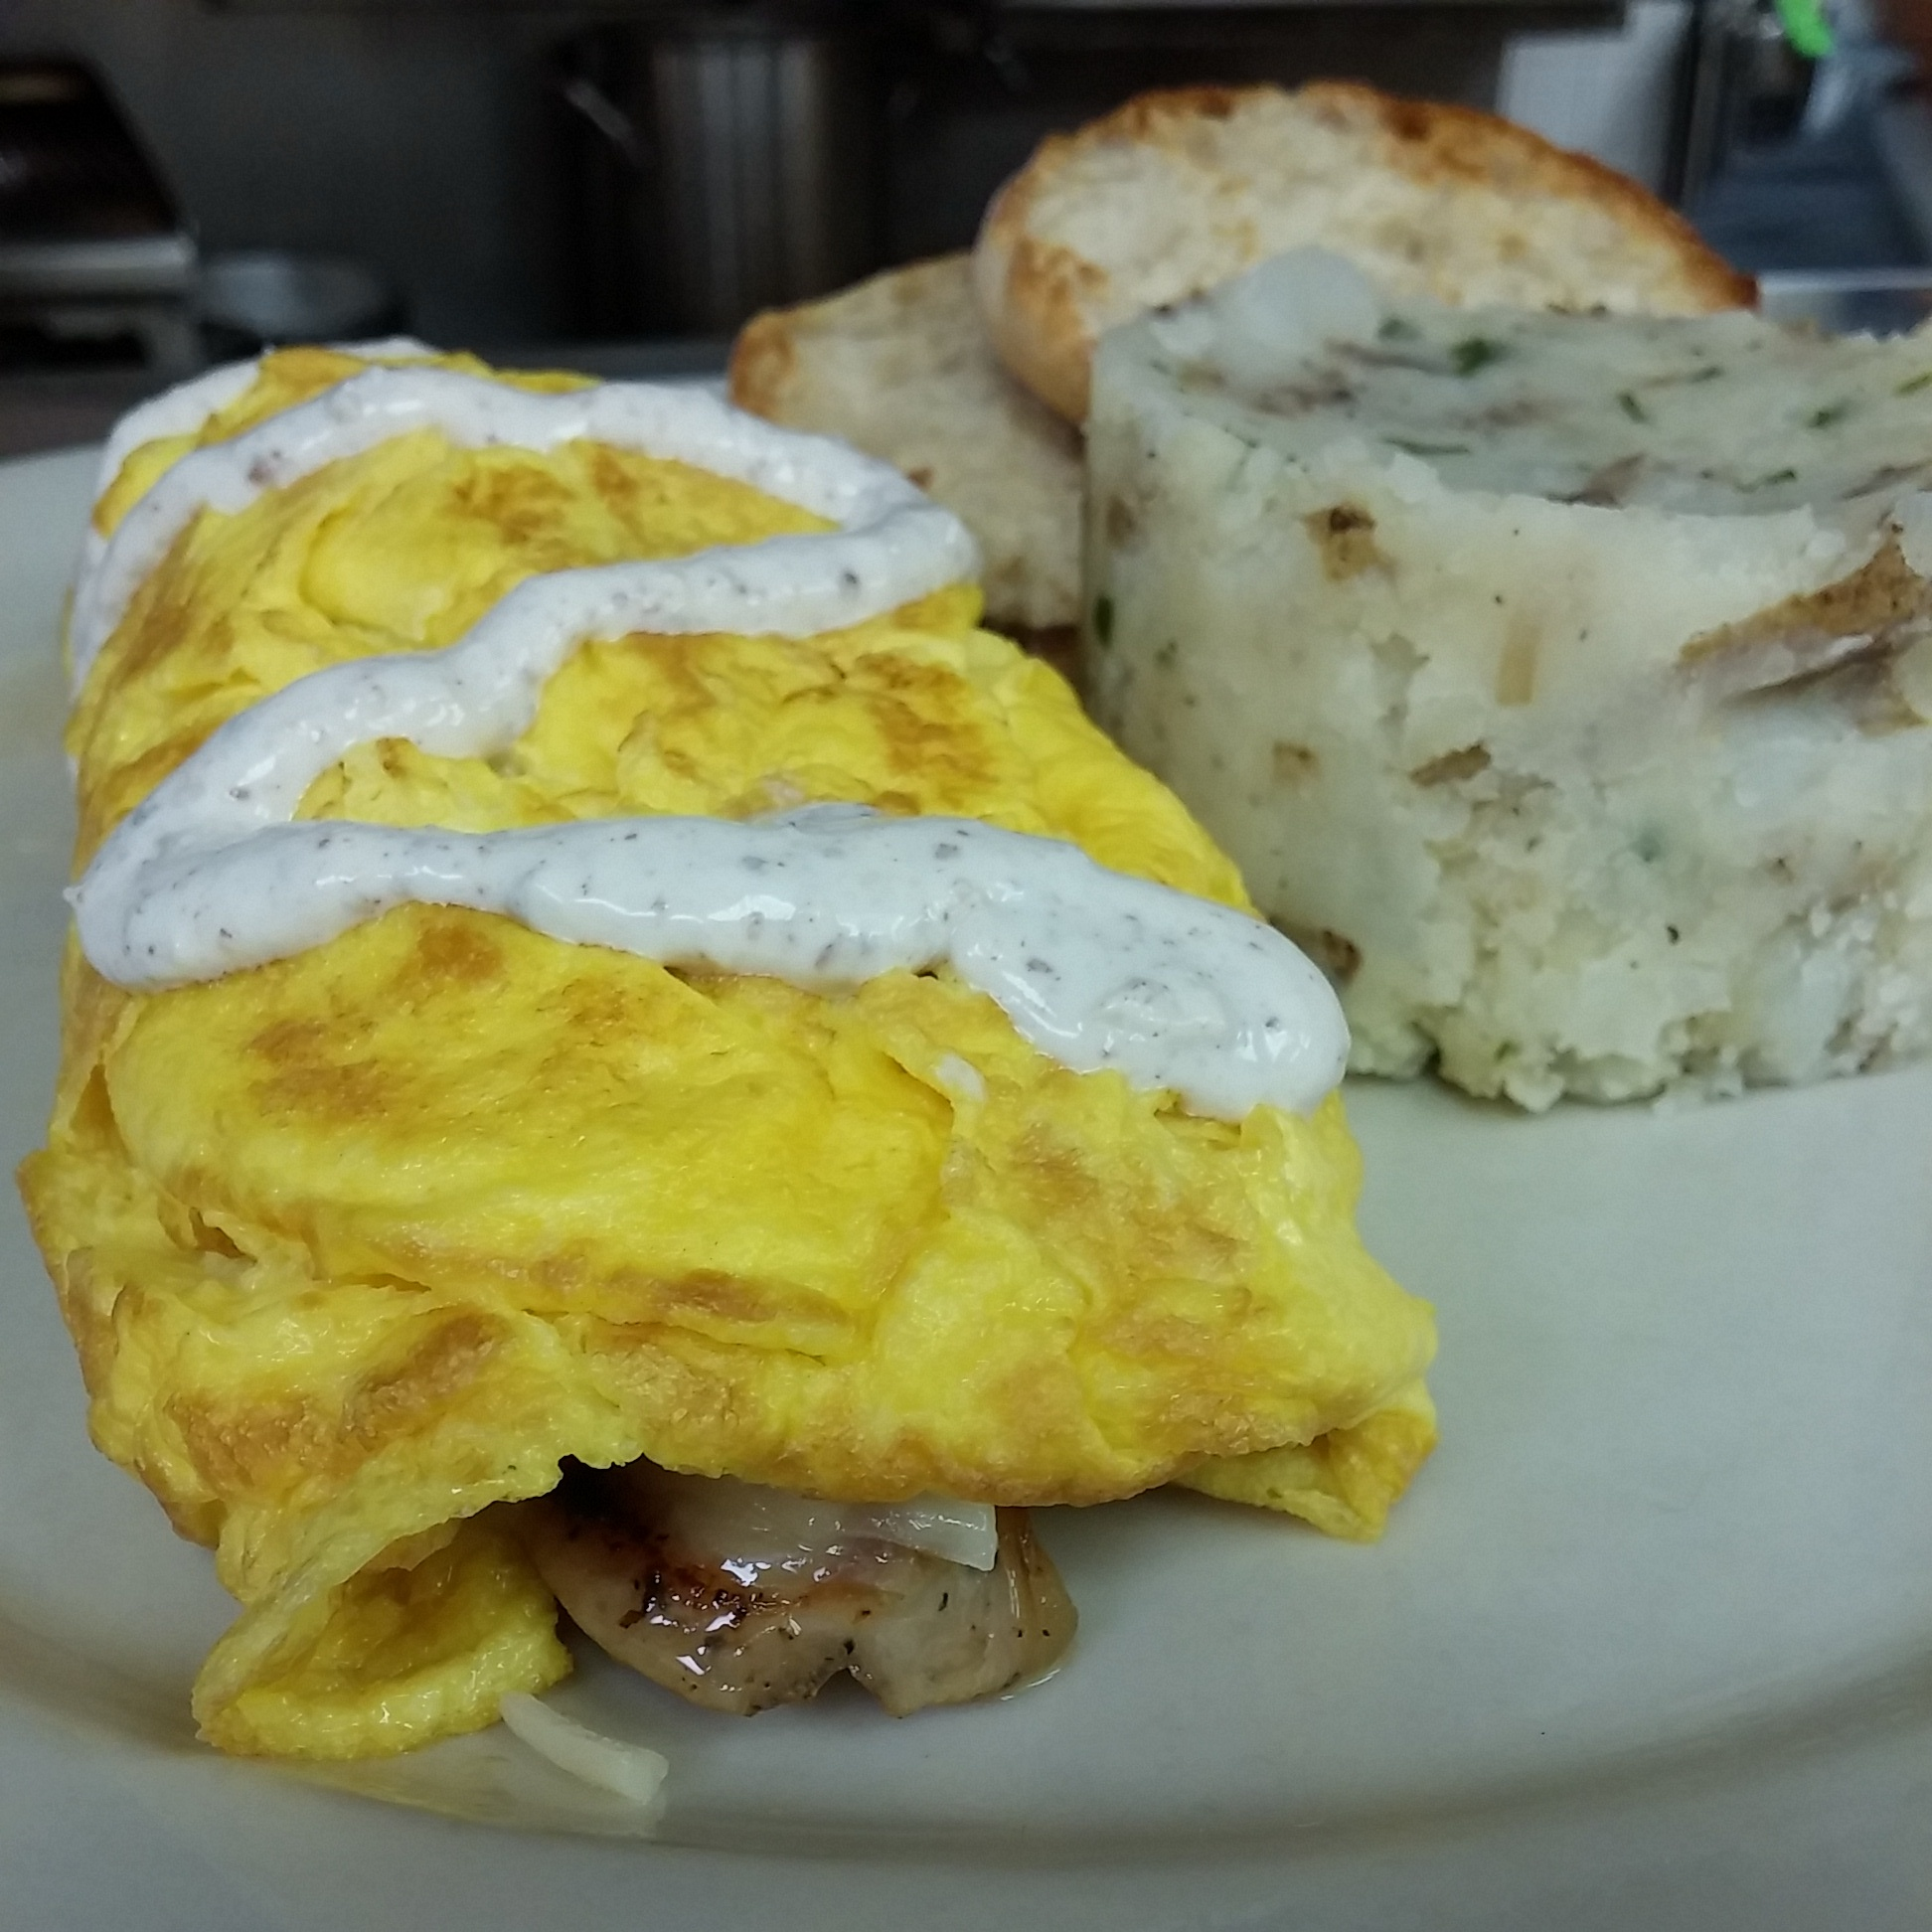 Omelet No. 5